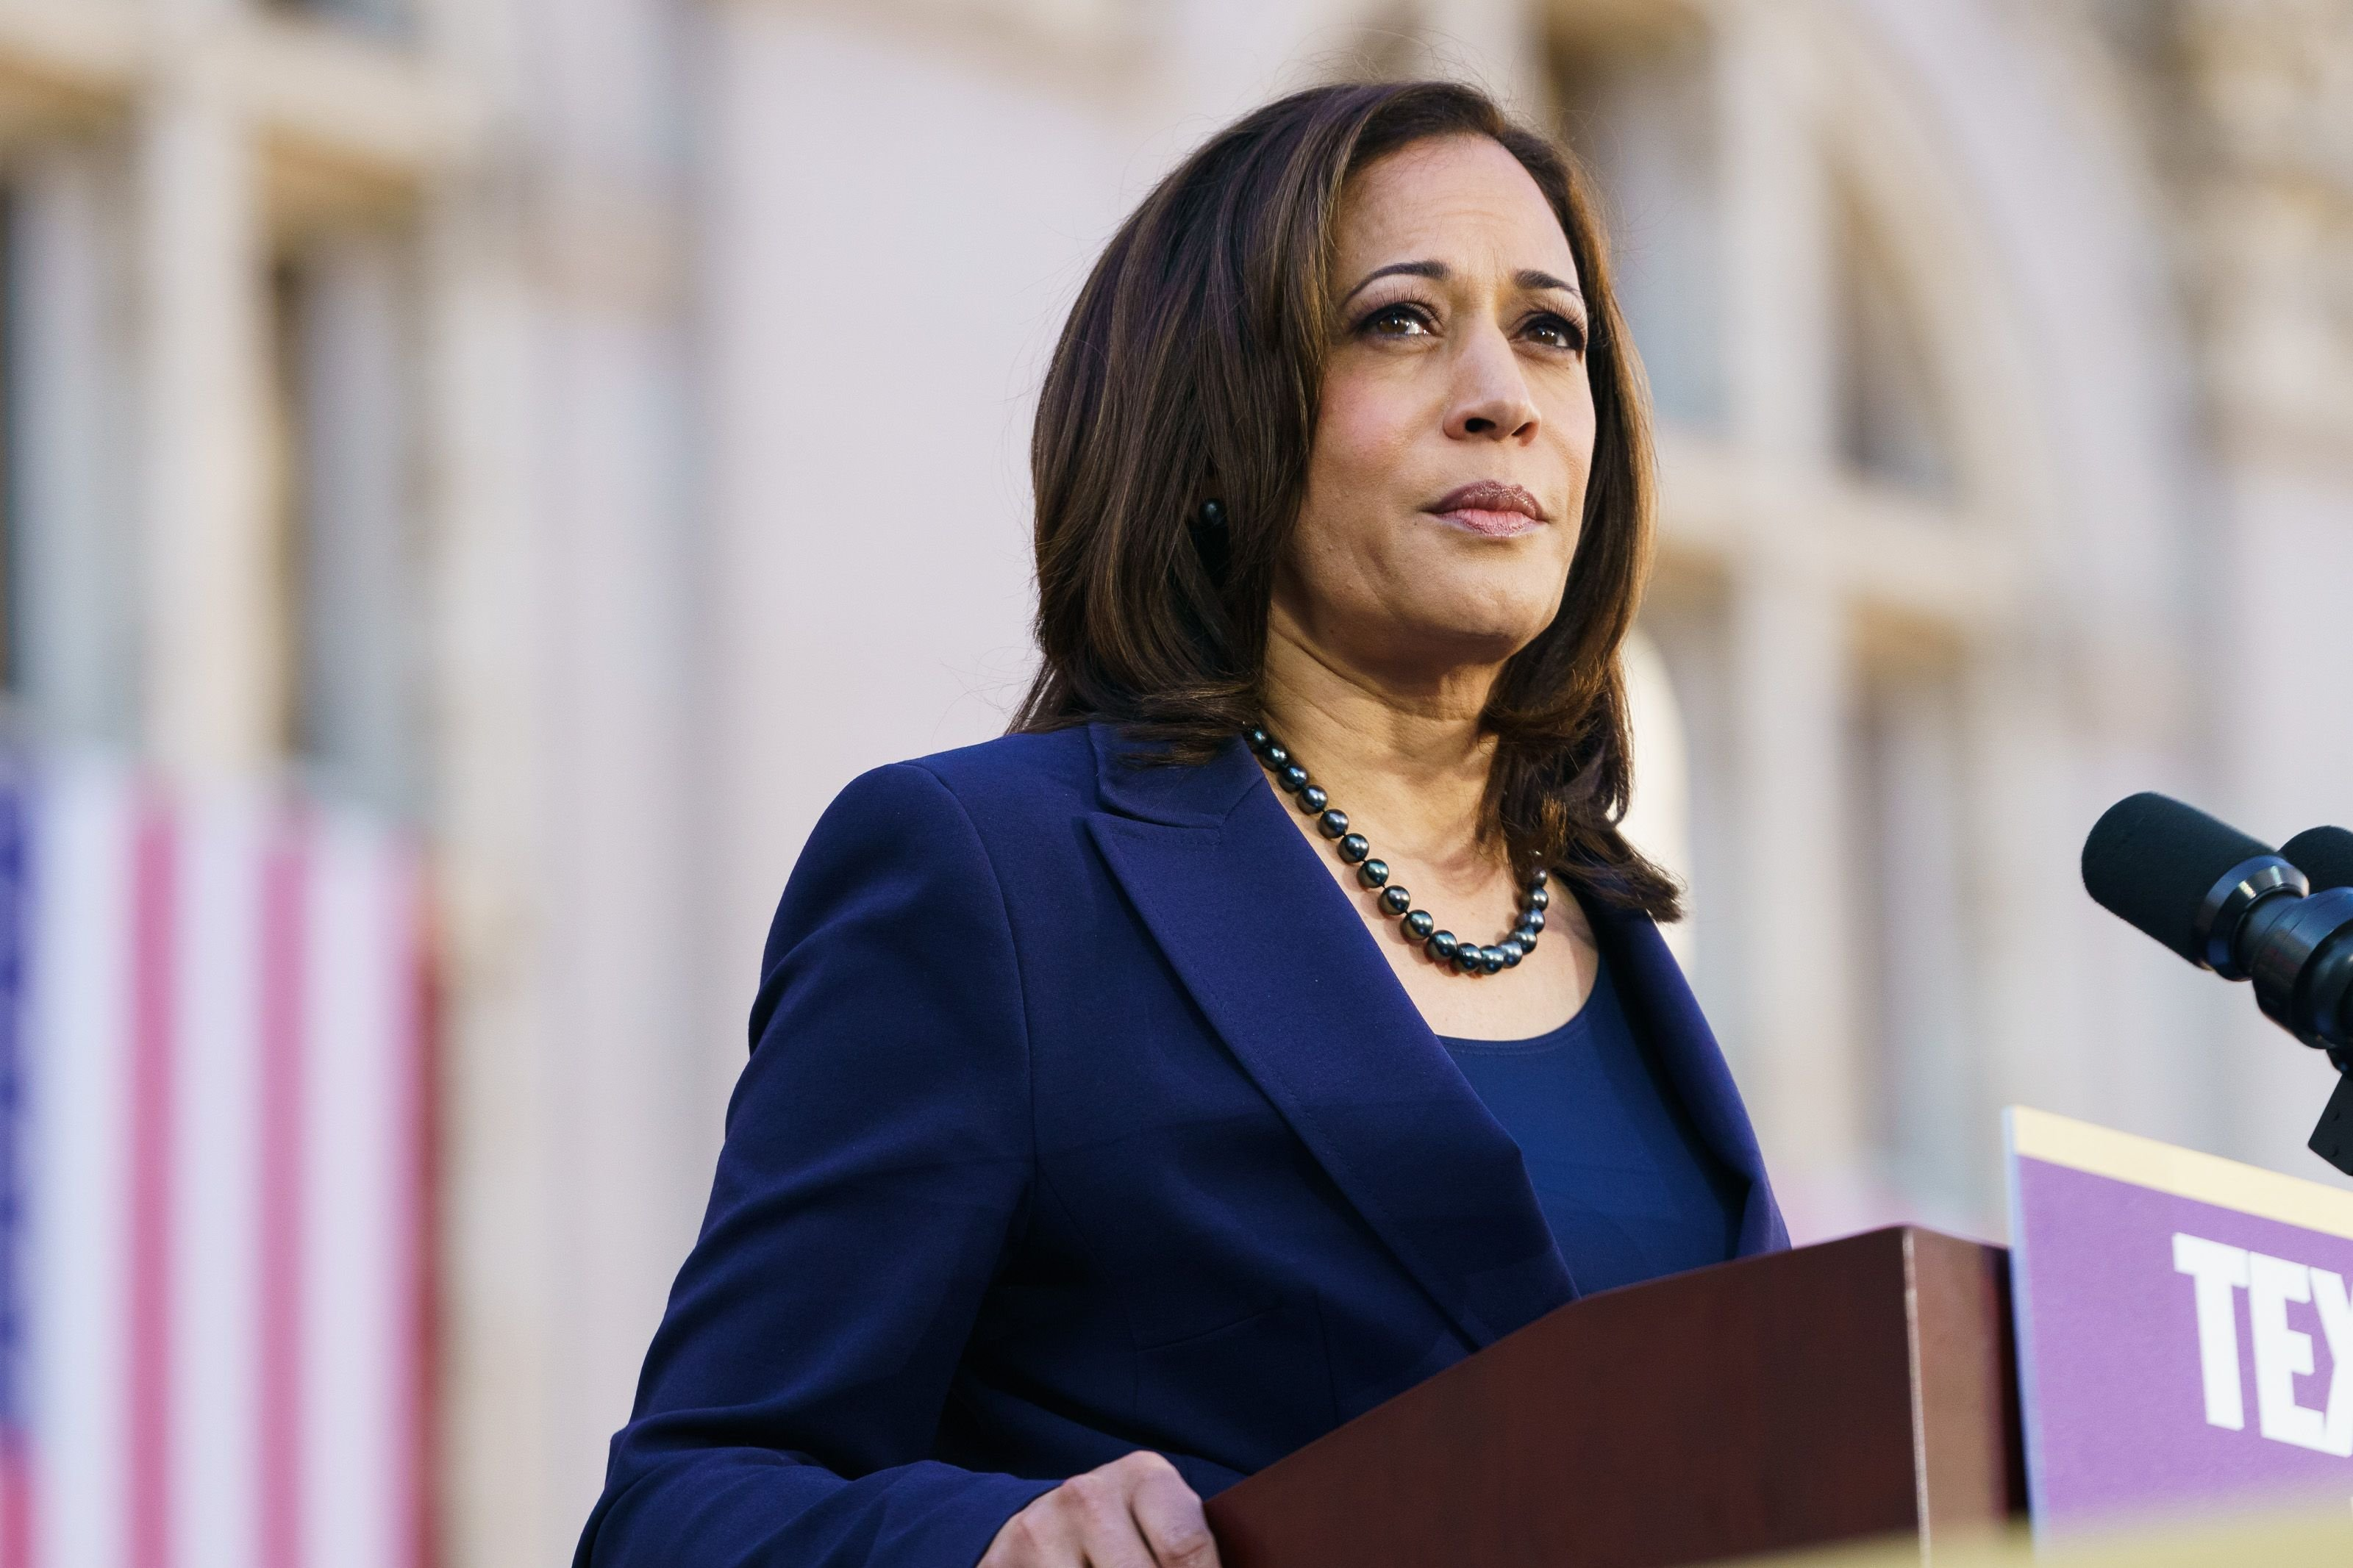 Vice President Kamala Harris speaks to her supporters during her presidential campaign launch rally in Frank H. Ogawa Plaza on January 27, 2019, in Oakland, California.   Photo: Getty Images